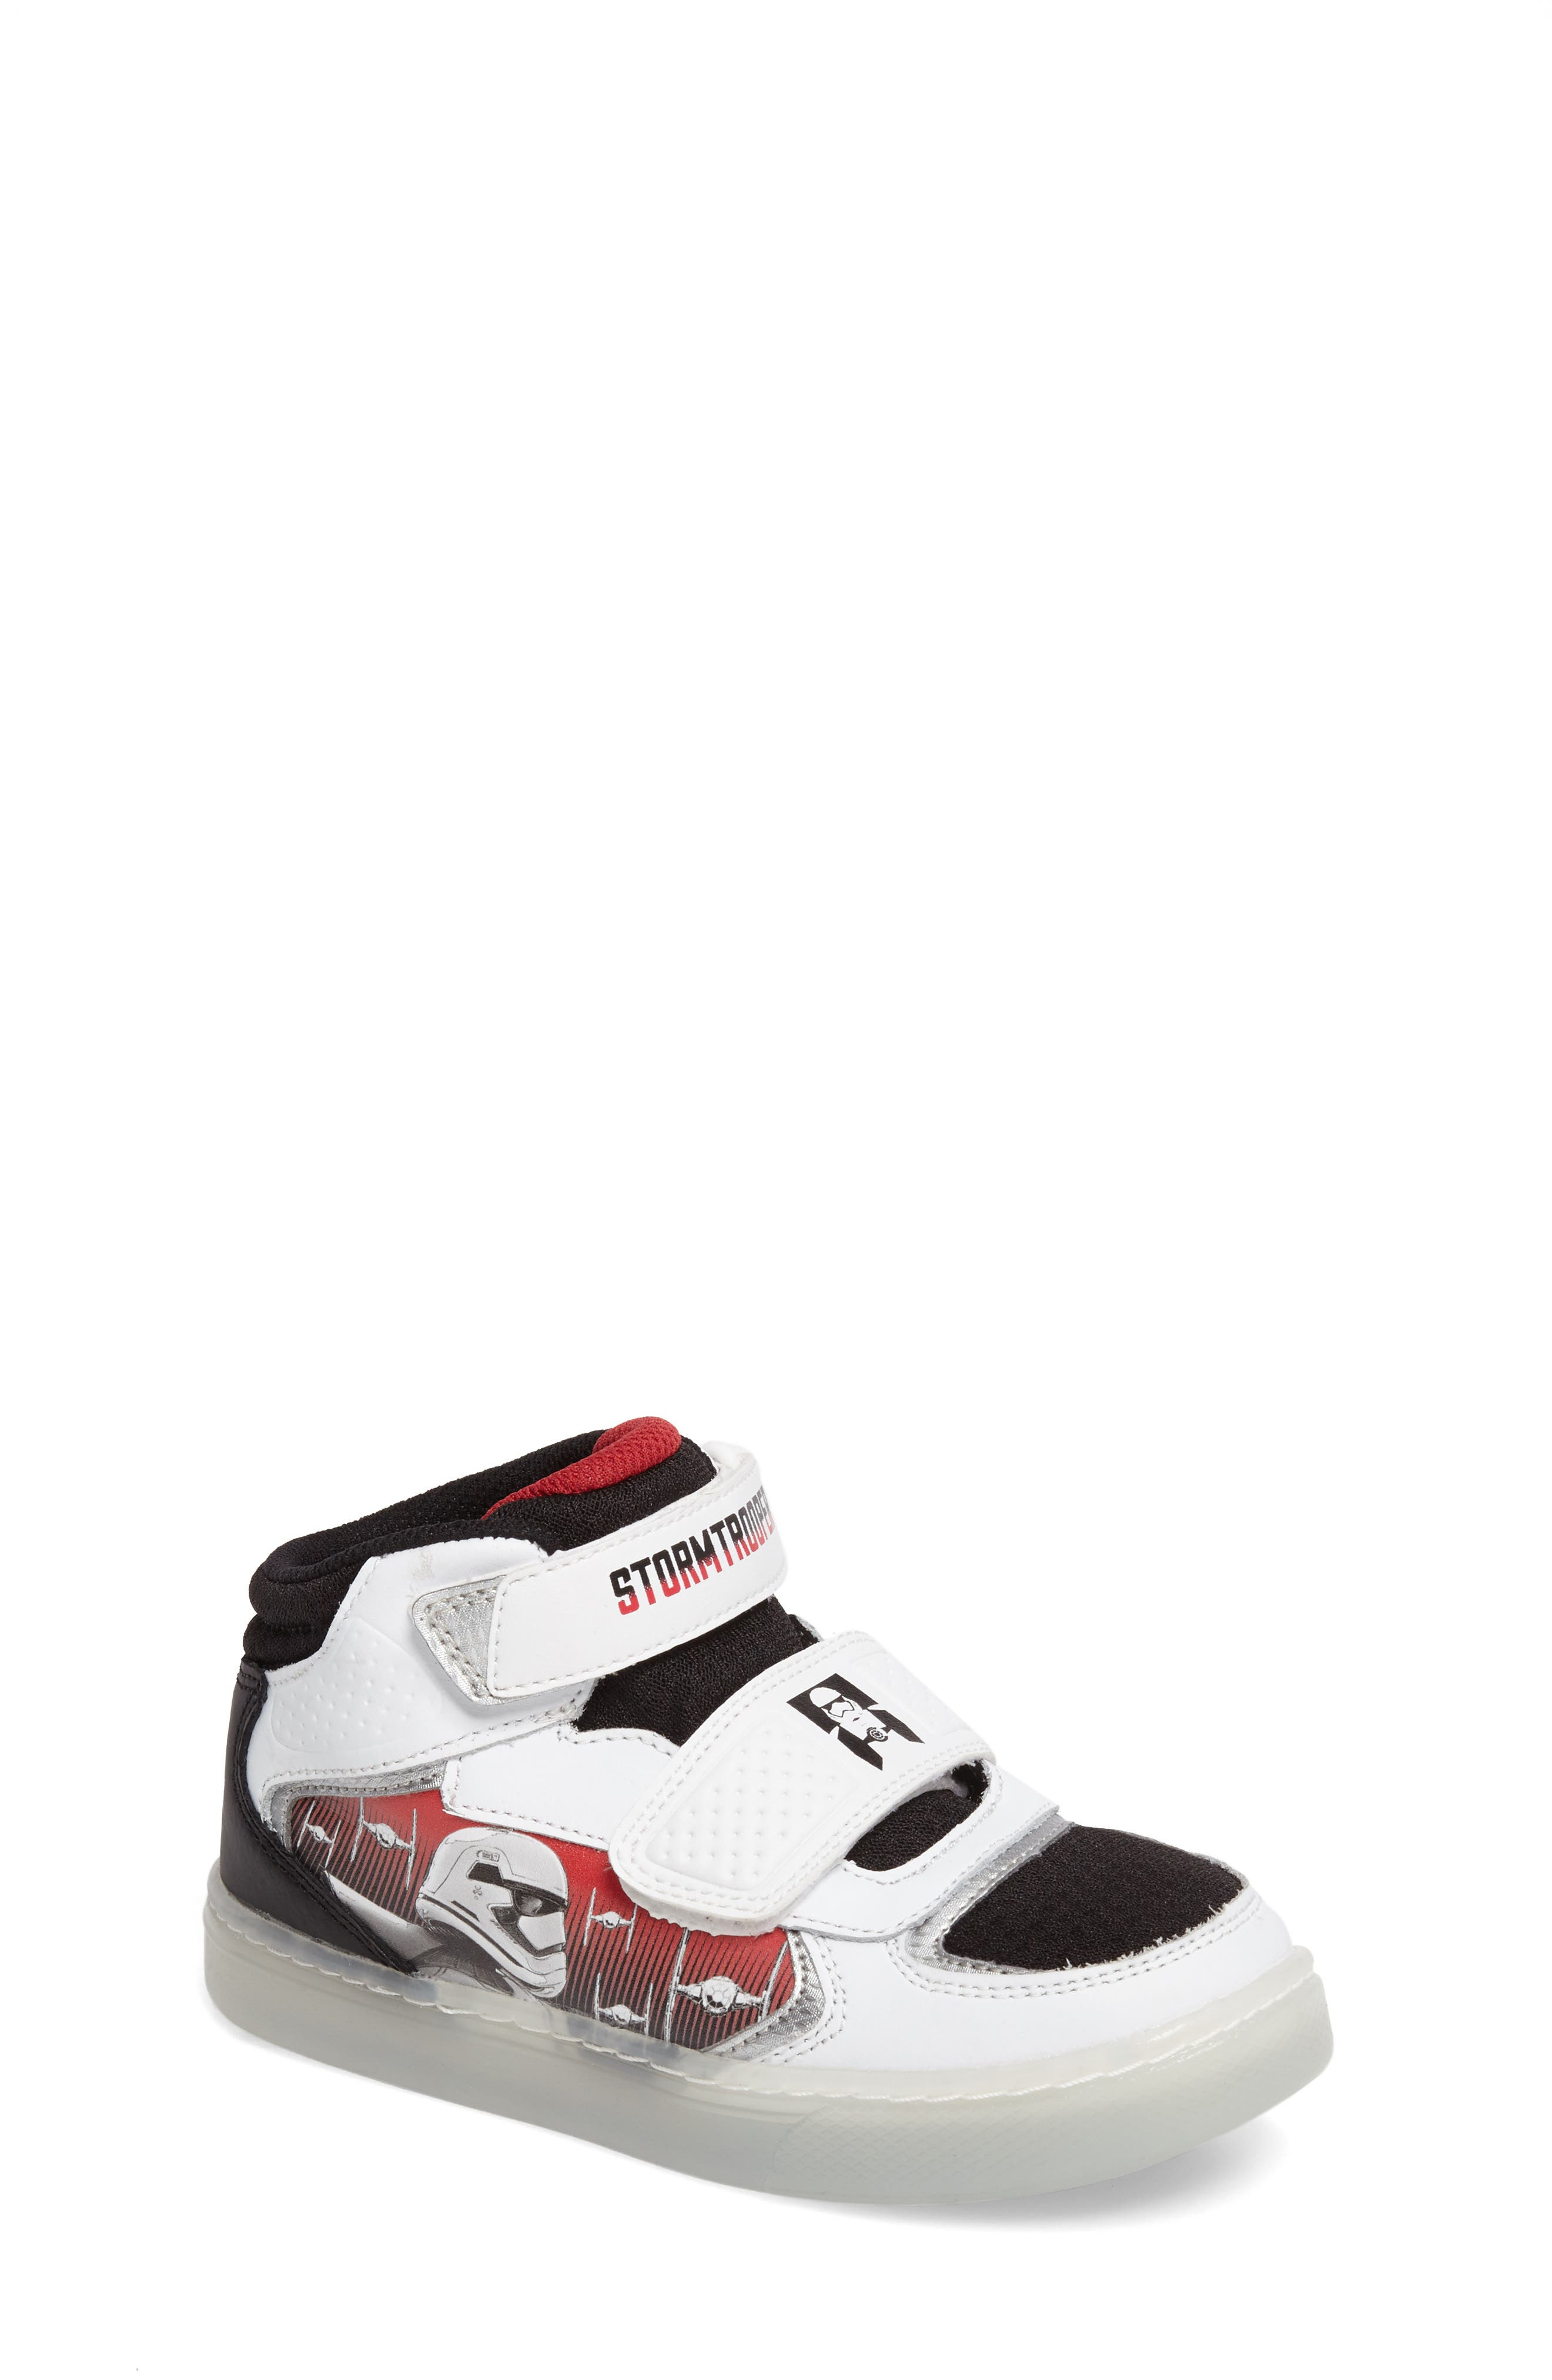 Alternate Image 1 Selected - Stride Rite Star Wars® Stormtropper Galaxy Light-Up Sneaker (Toddler & Little Kid)